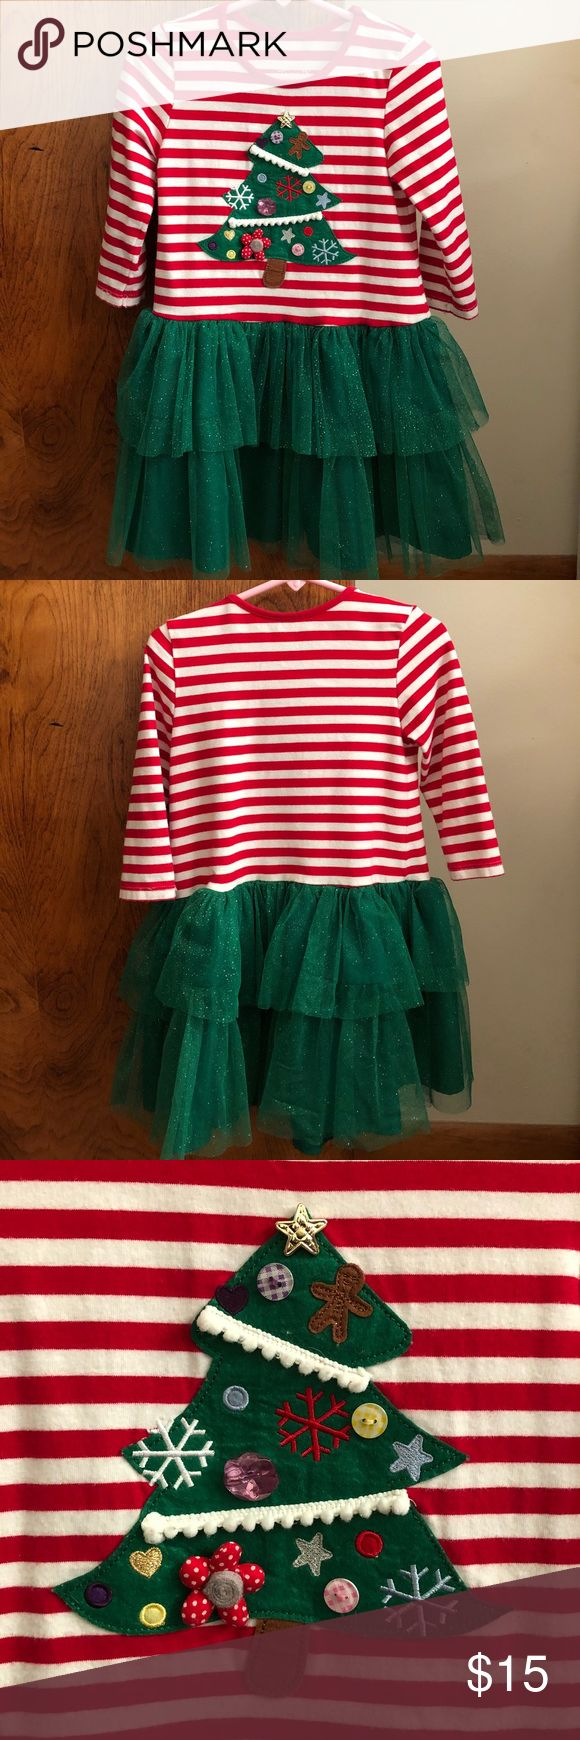 Marmellata Size 5 Christmas Tutu Dress Marmellata size 5 red and white stripe dress with sparkly green tutu.  Dress has adorable Christmas tree applique.  Great used condition; only worn and washed/hang dry a few times. Marmellata Dresses Formal